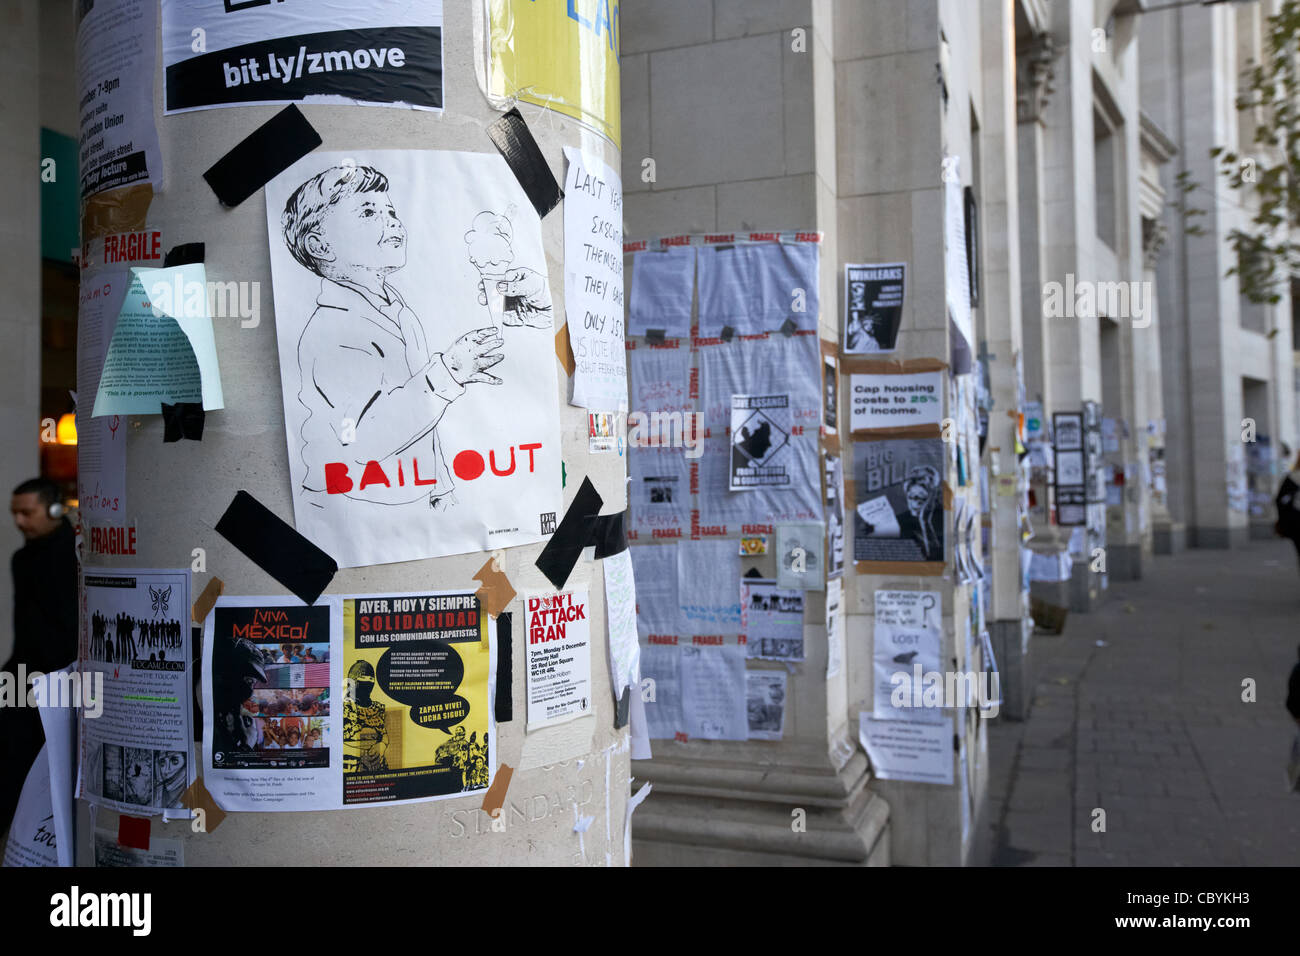 anti bankers bail out posters at the occupy london protest site in the city of London England UK United kingdom - Stock Image